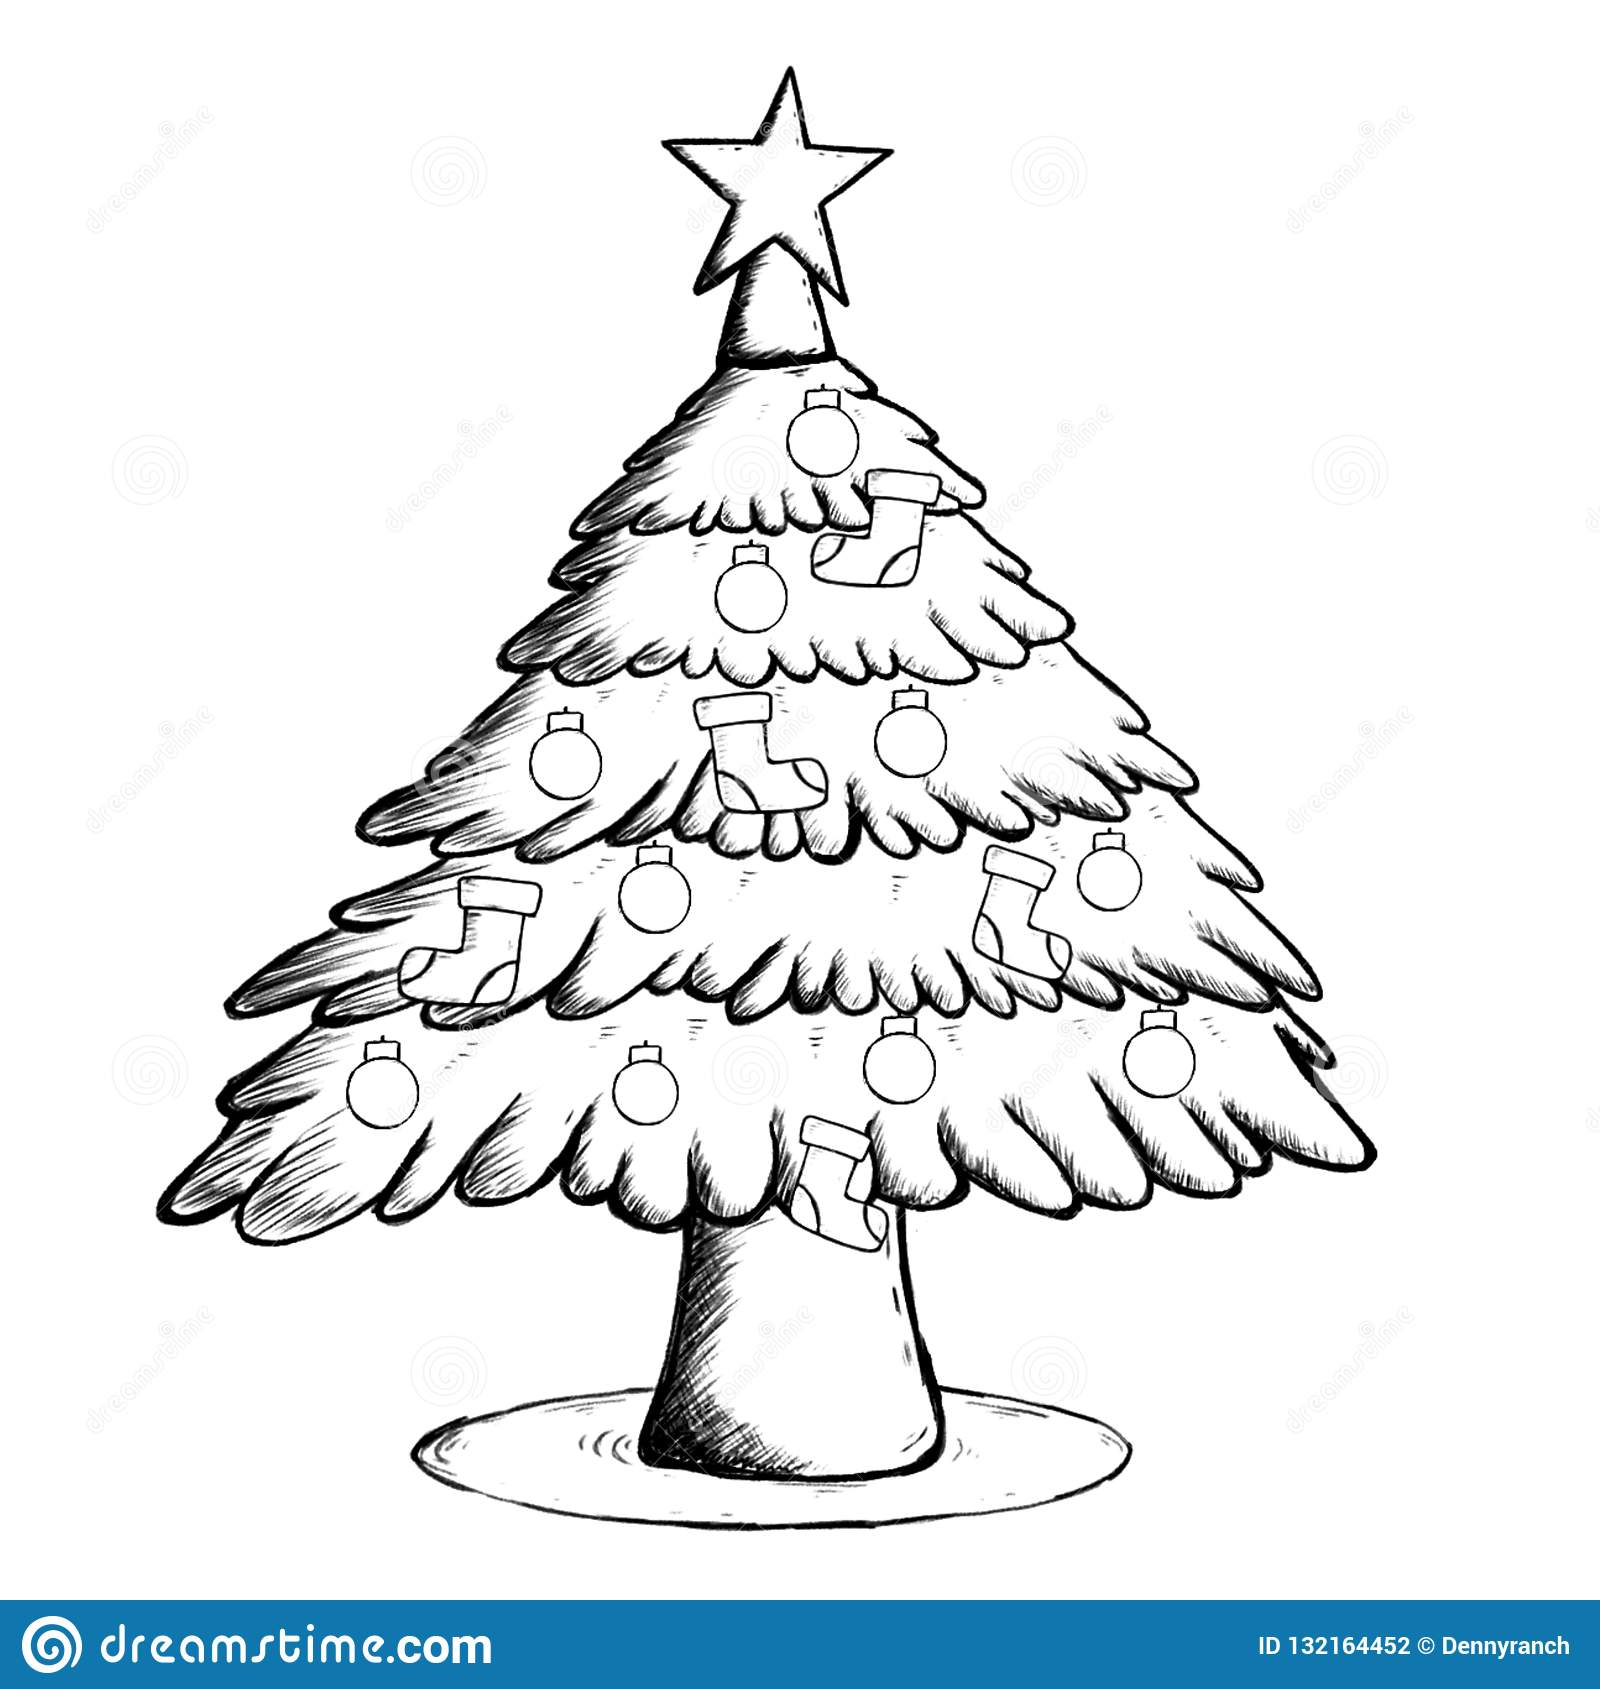 Christmas Tree Coloring Page.Christmas Tree Coloring Page Stock Illustration